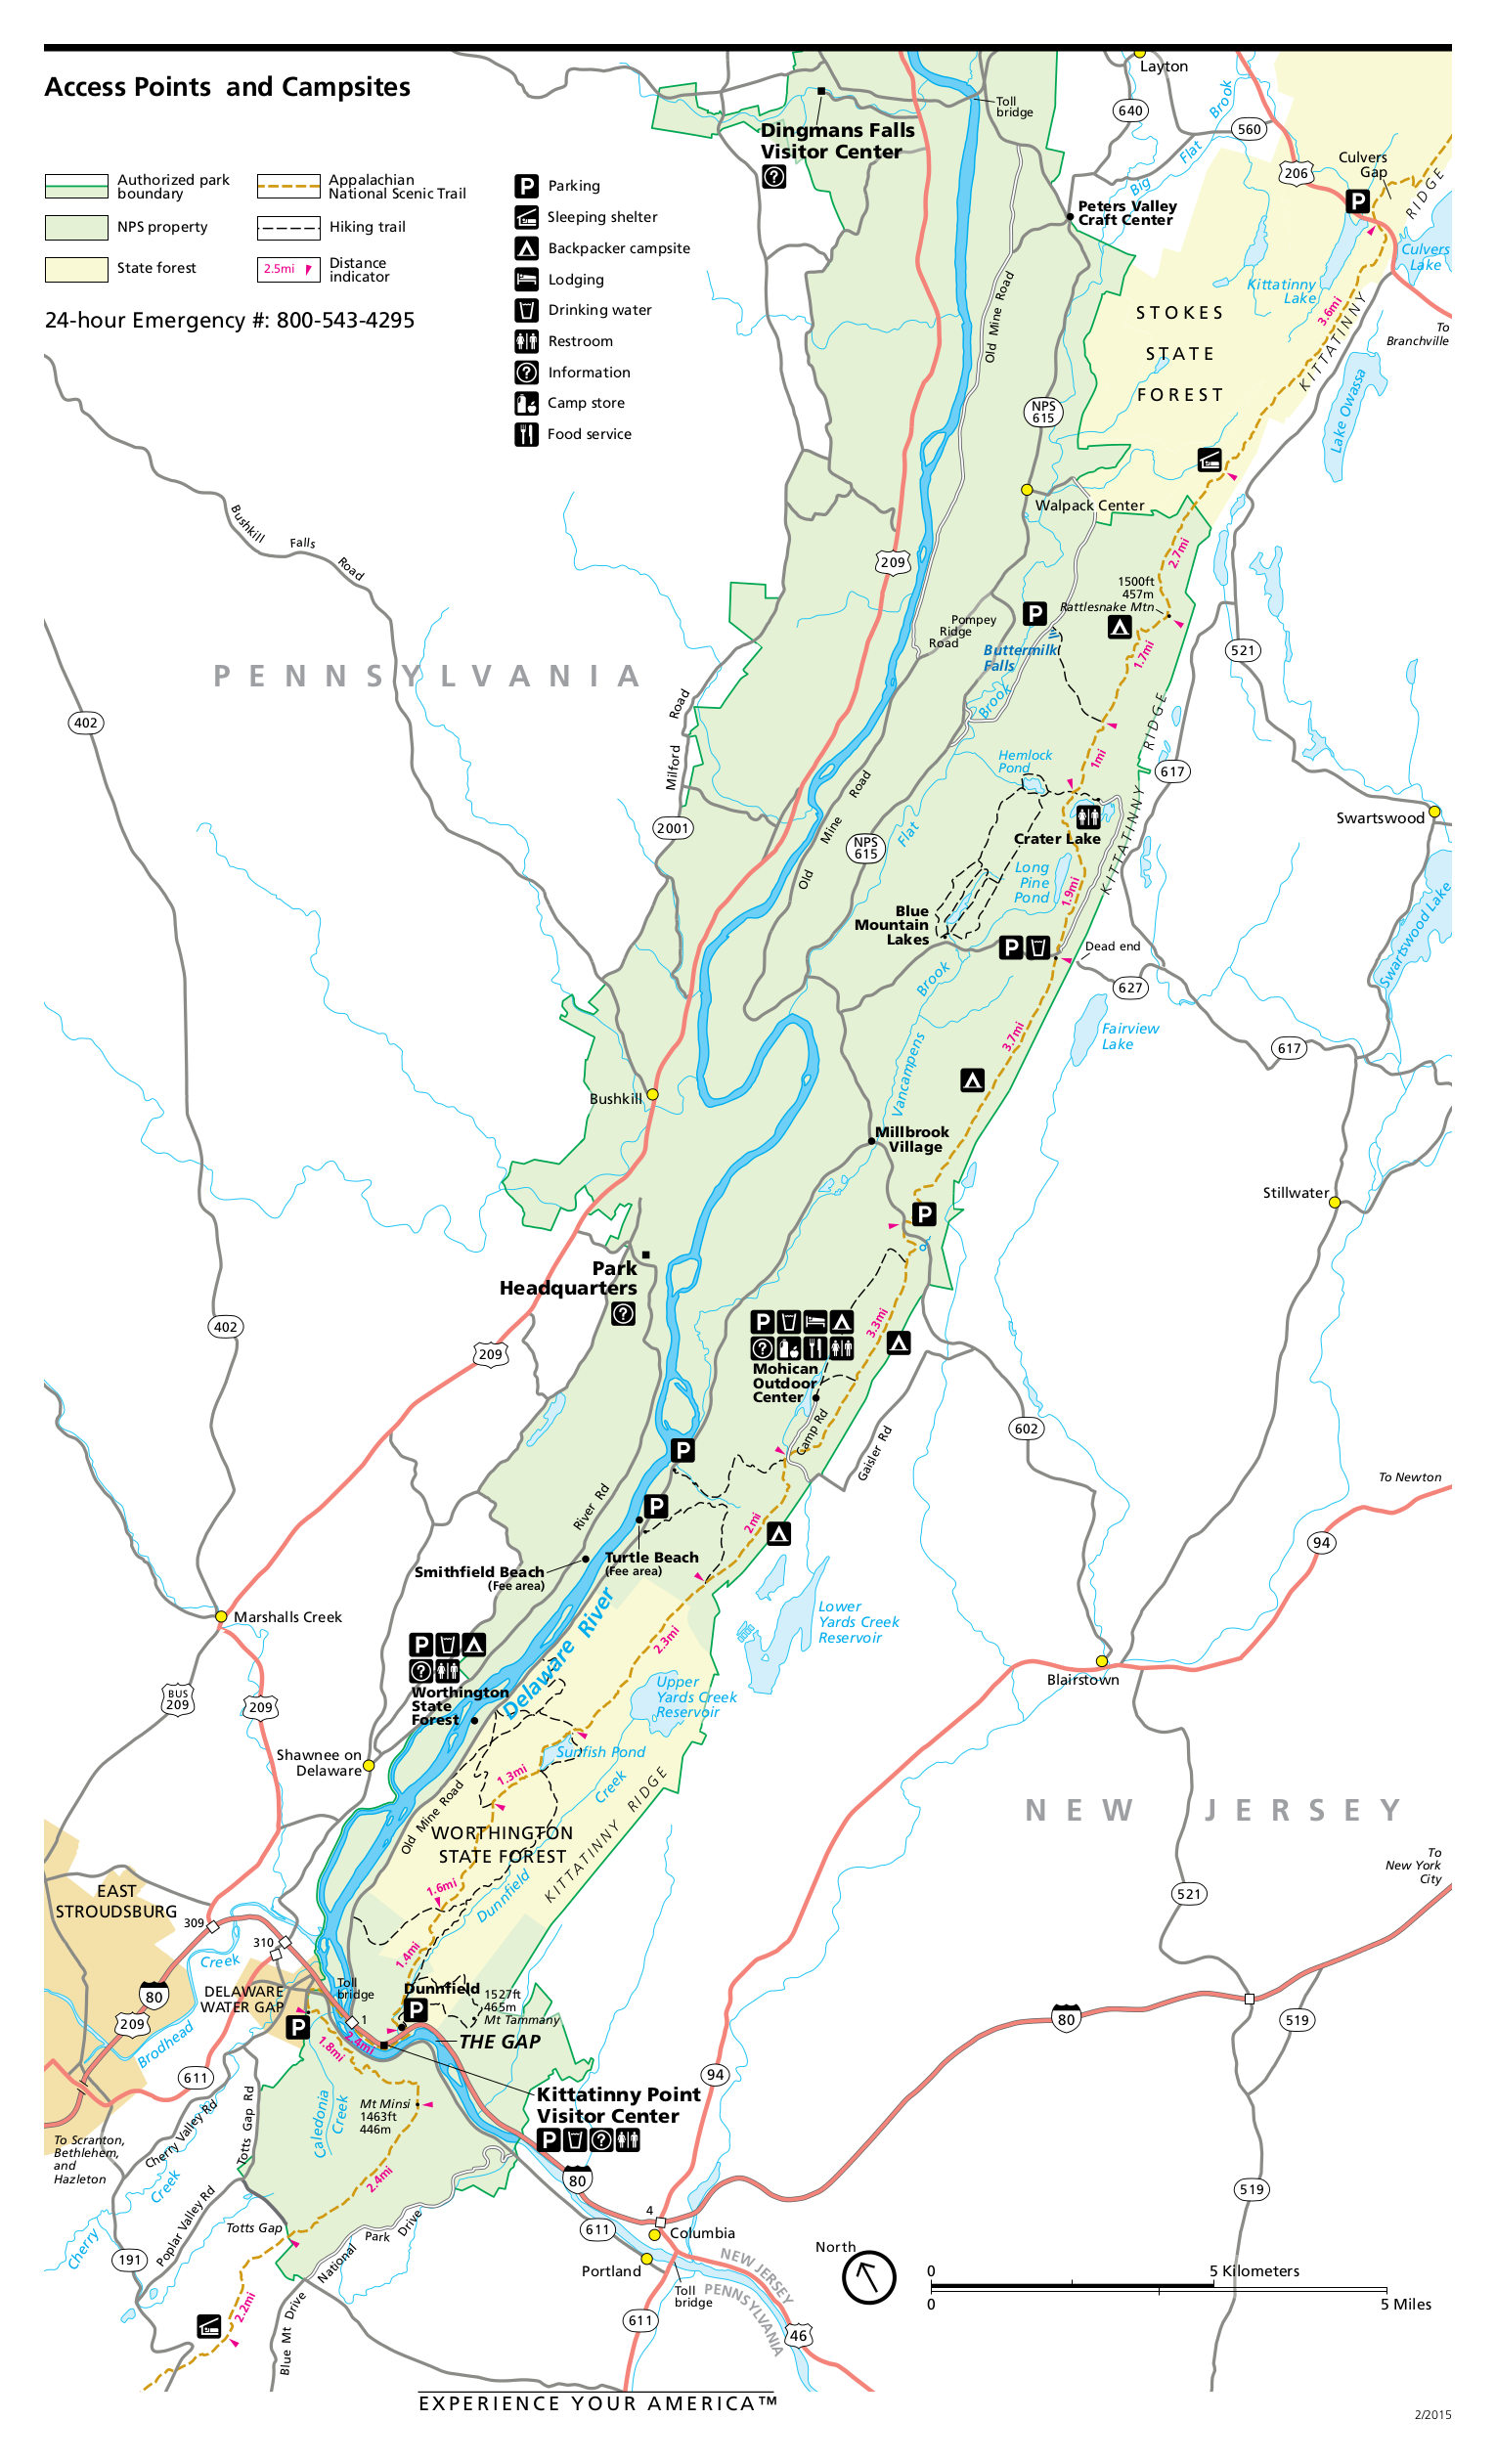 delaware water gap national recreation area map File Nps Delaware Water Gap Appalacian Trail Map Jpg Wikimedia delaware water gap national recreation area map